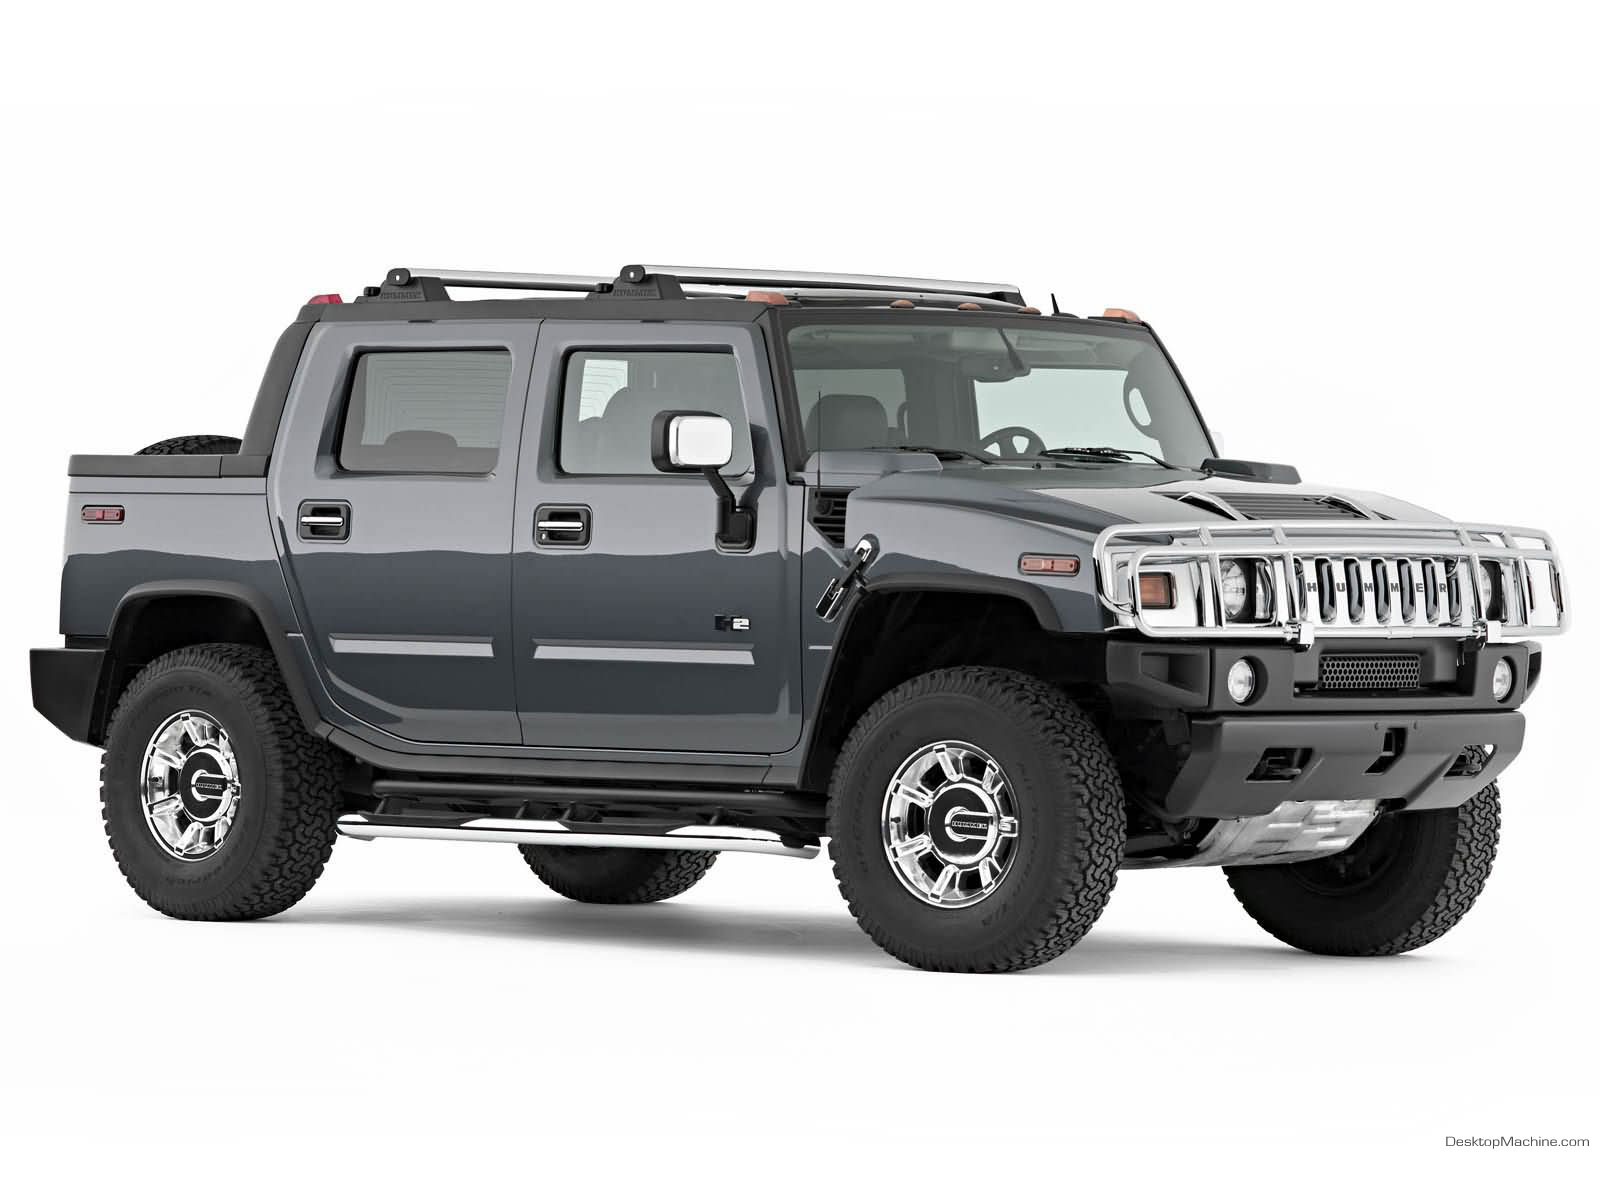 military hummer images start 450 WeiLi Automotive Network